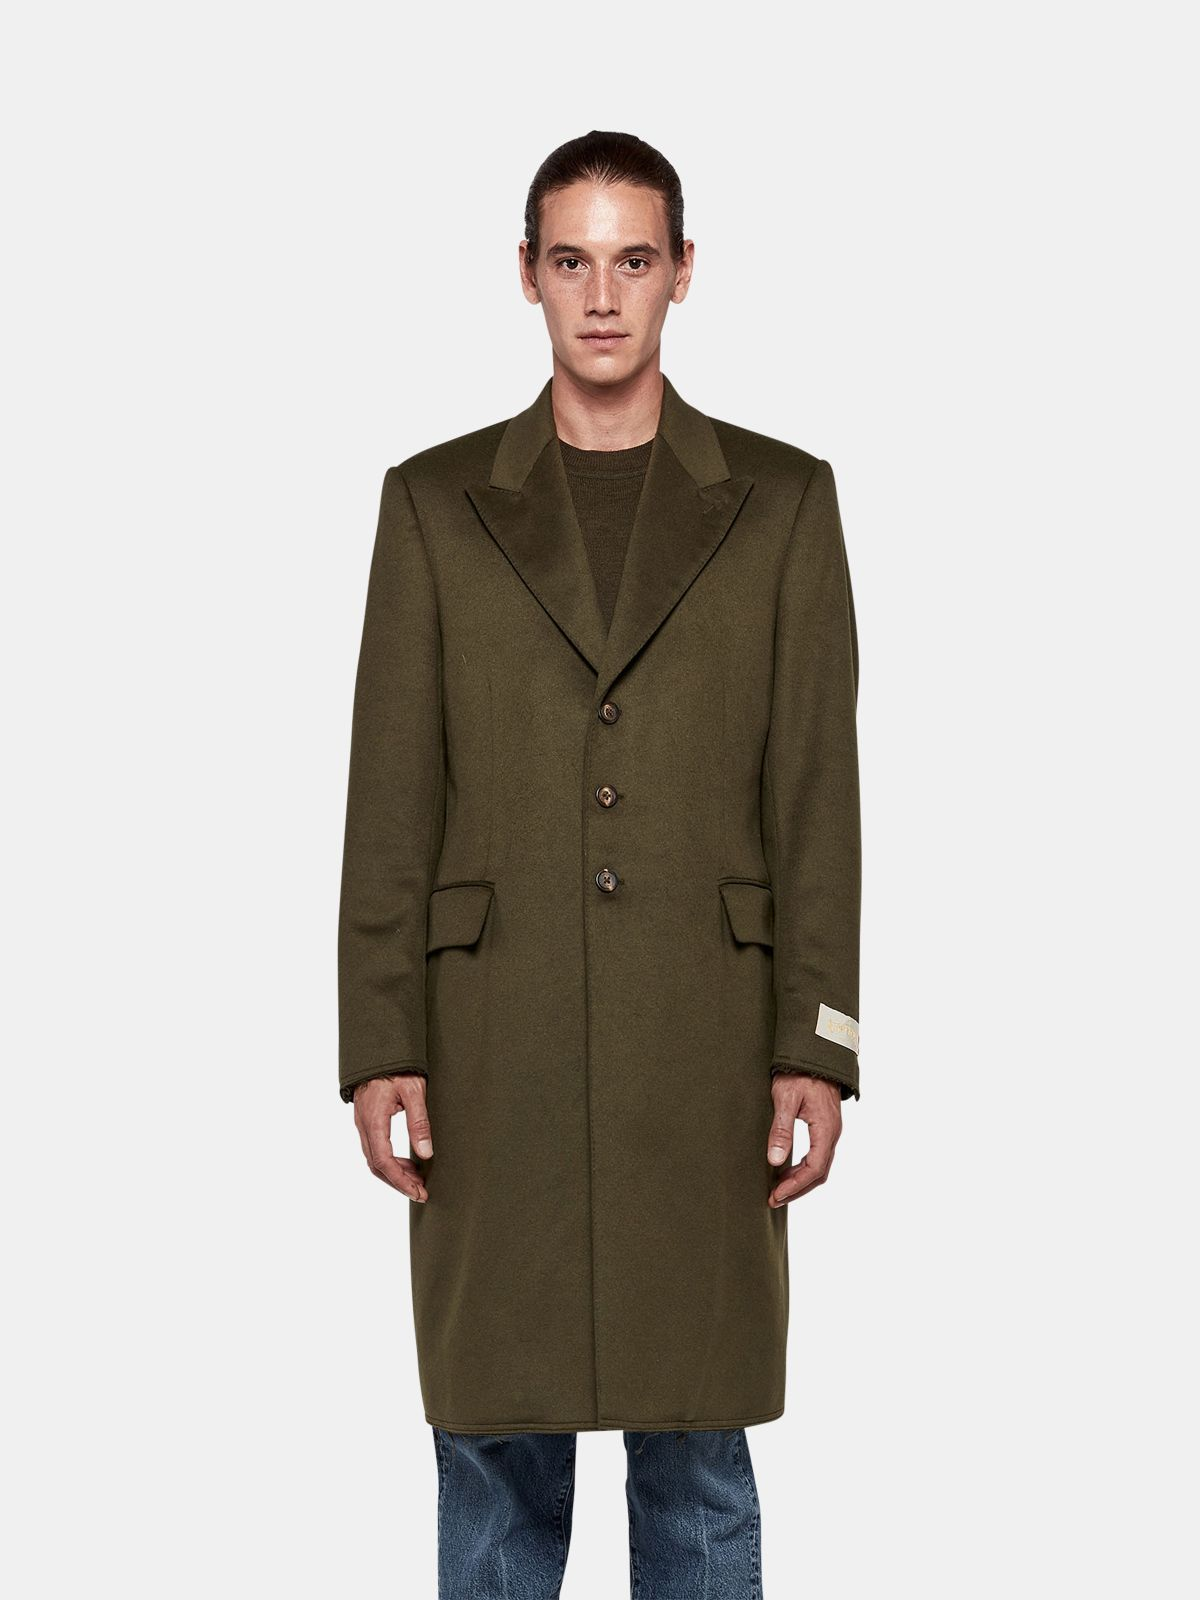 Golden Goose - Yoshio coat in wool blend with classic lapels in